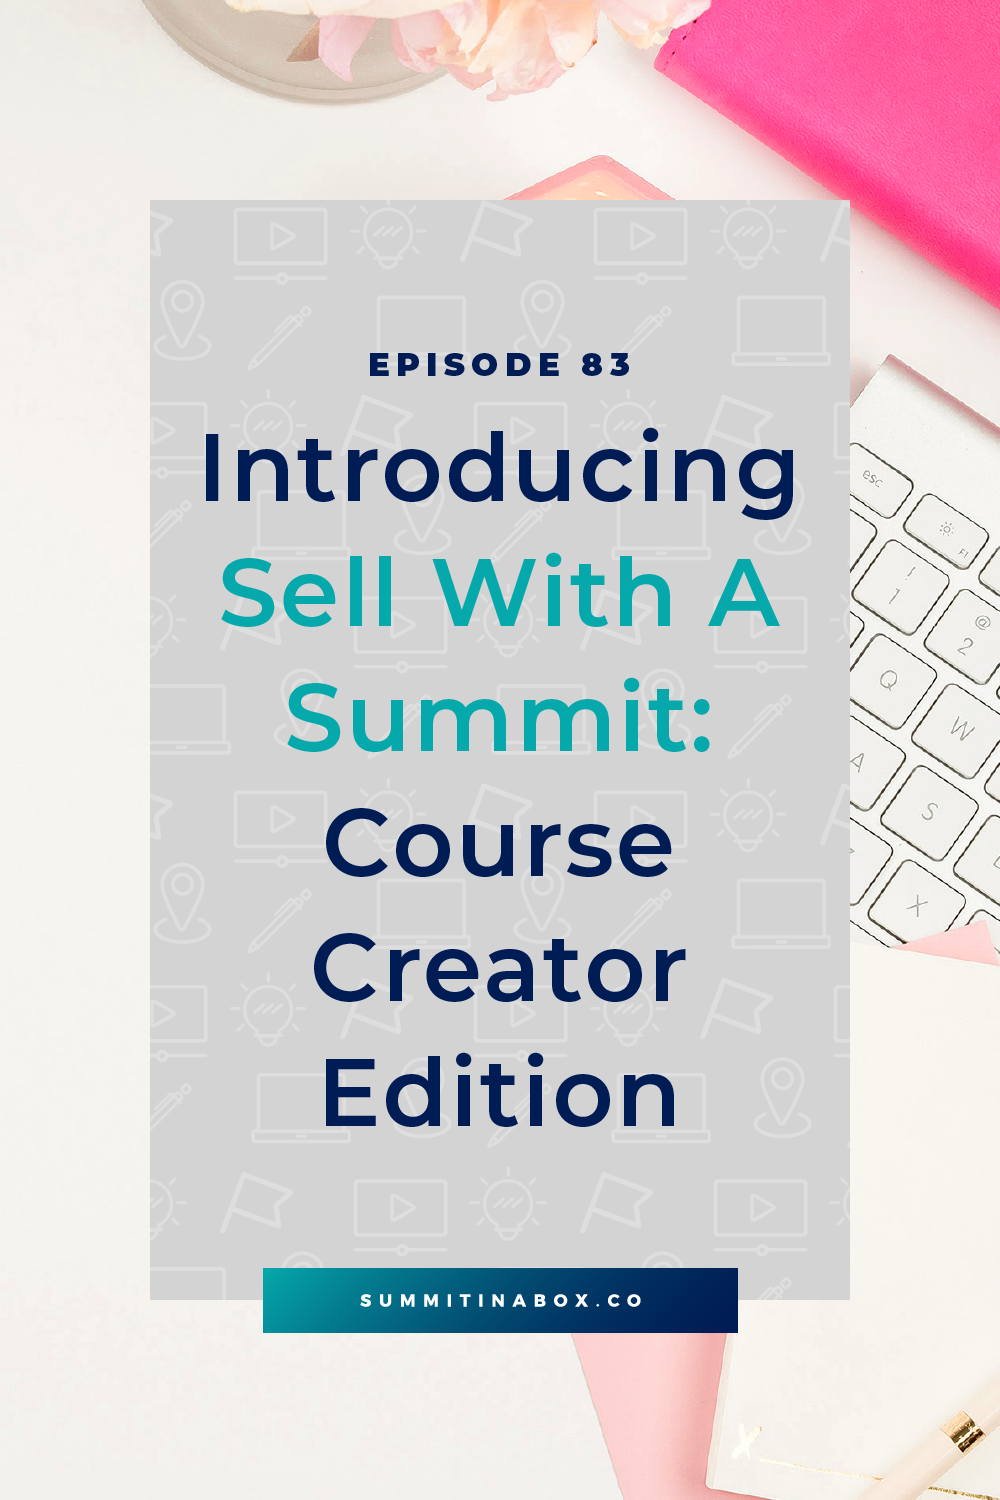 Are you a course creator who wants to hit your biggest course launch ever with a virtual summit? Learn how to sell with a summit at this free event!